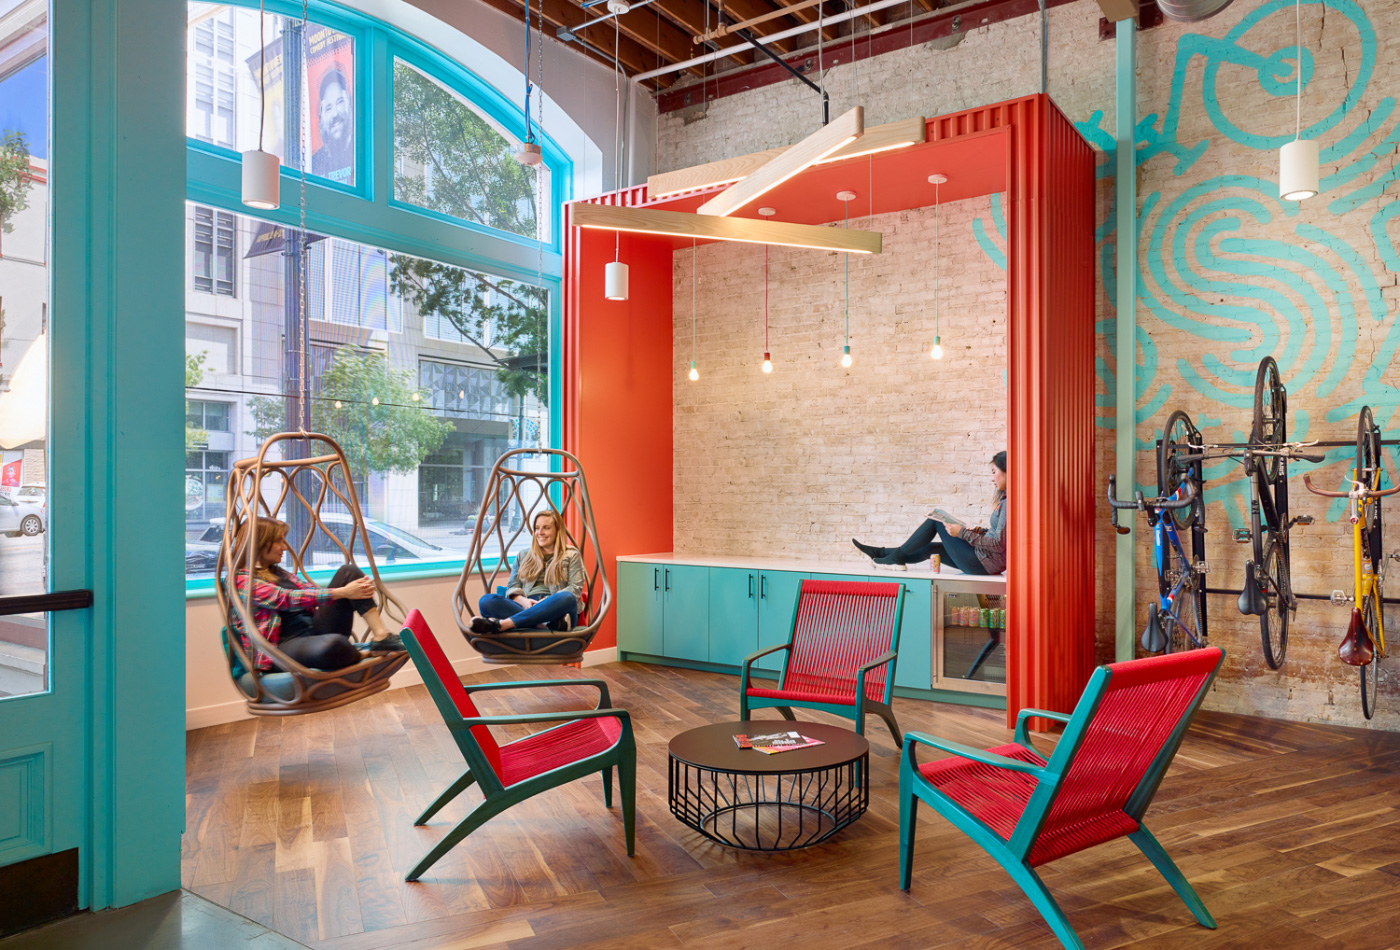 Interior of a Spreetail office, showing colorful metal accents